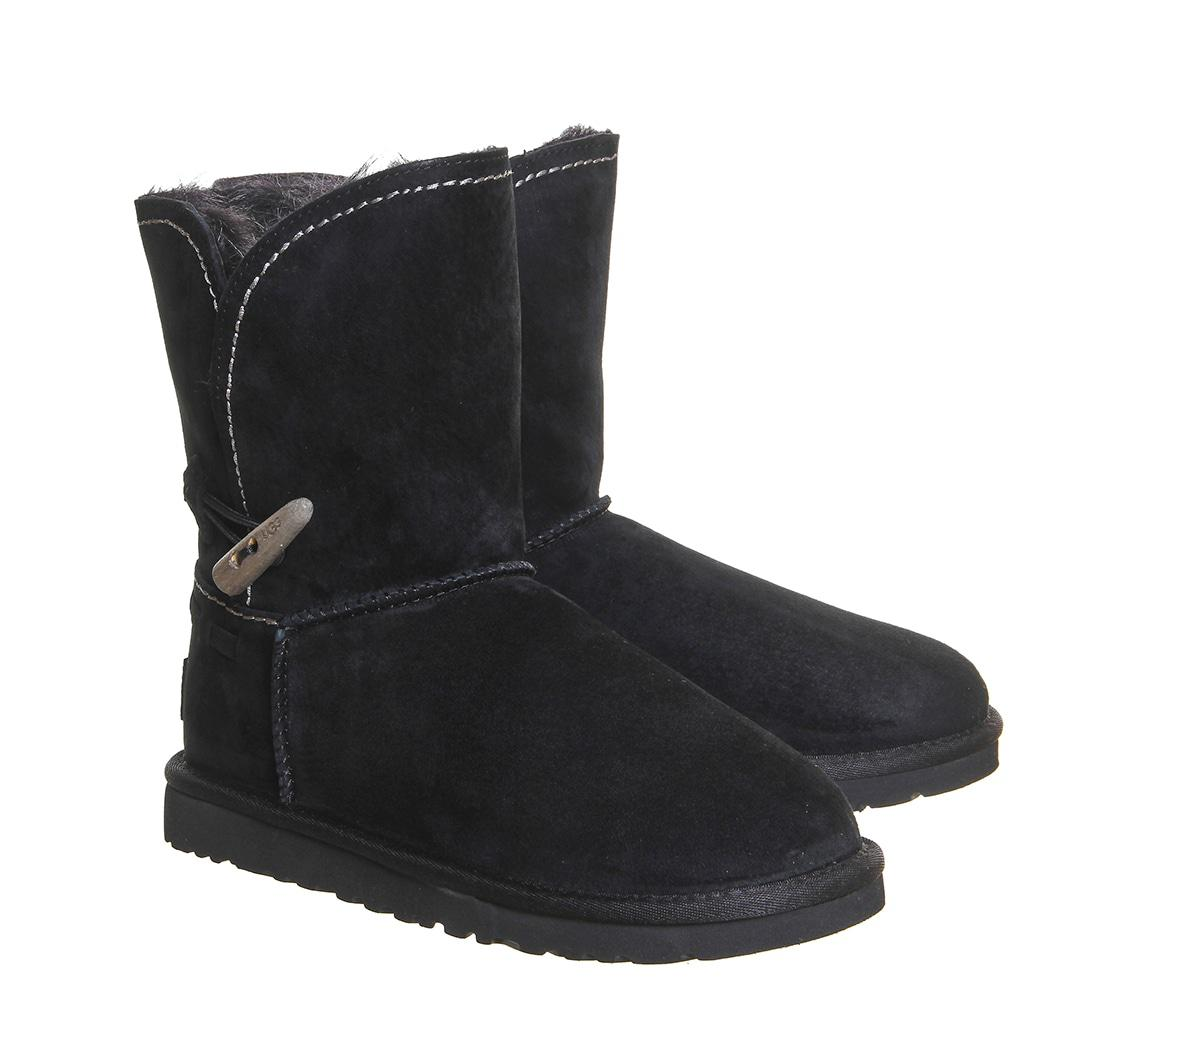 Ugg Australia Meadow Calf Womens Ankle Boots Black Suede